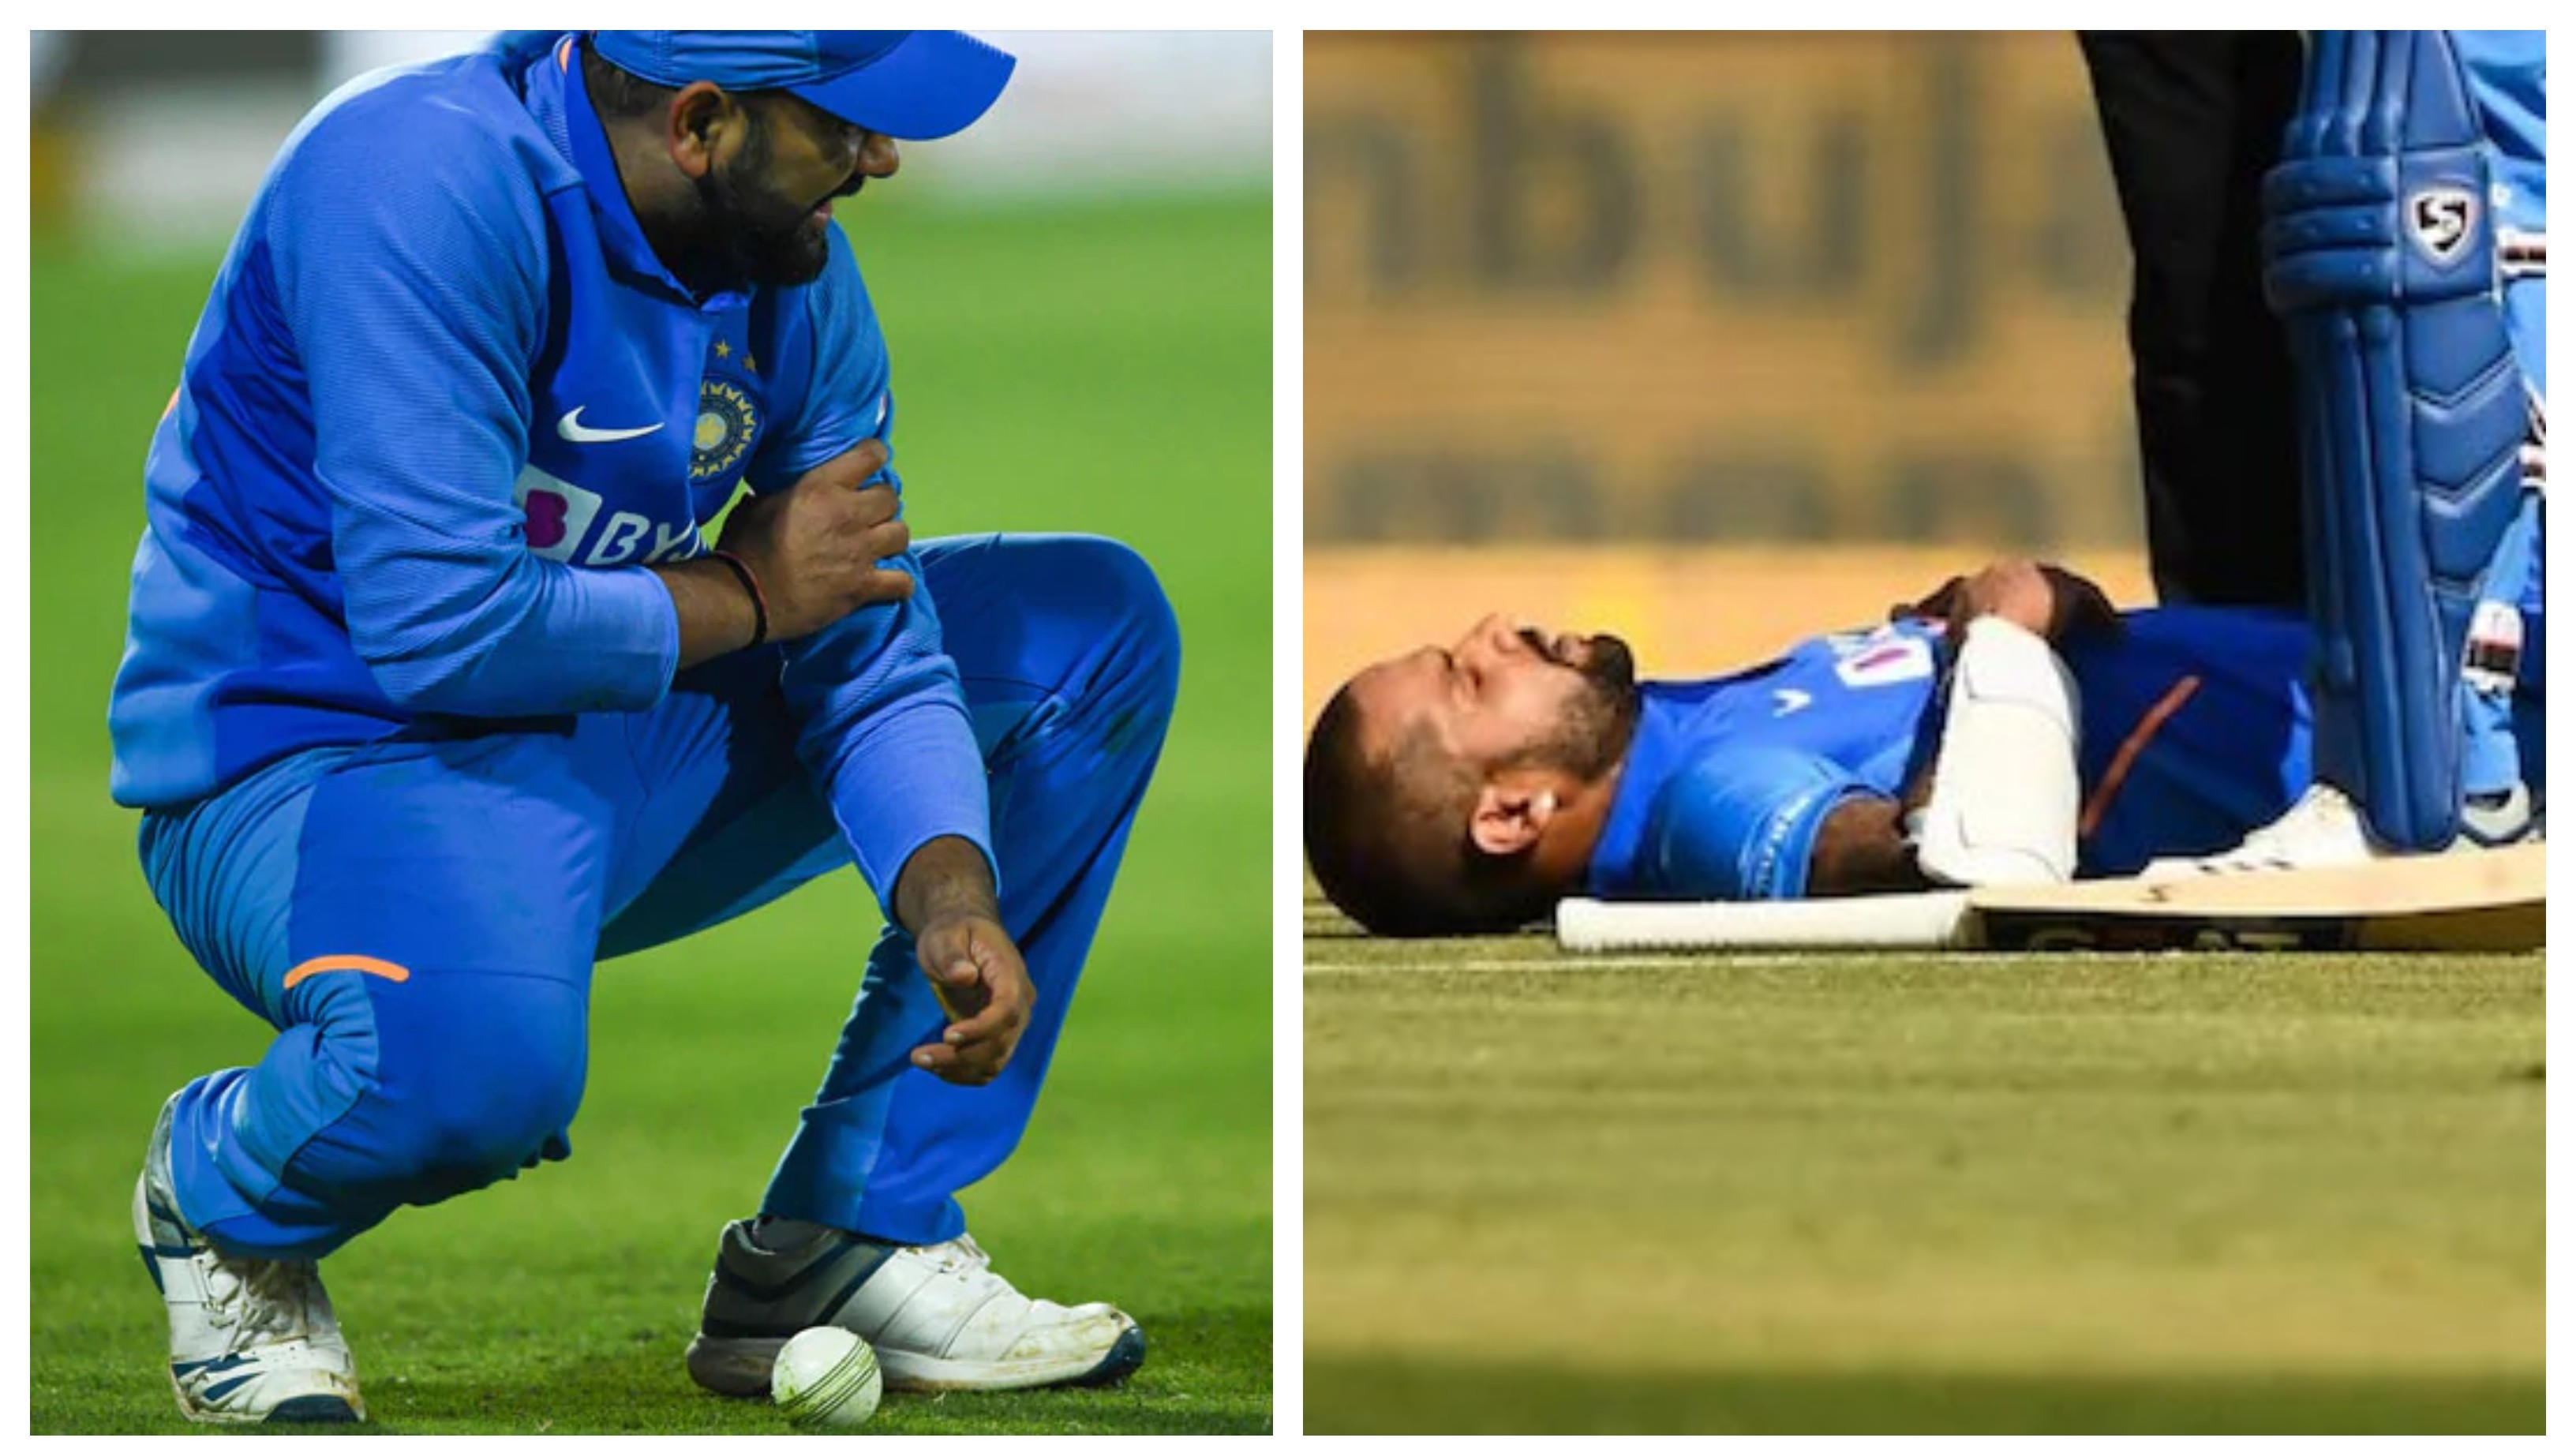 IND v AUS 2020: BCCI issues injury update on Dhawan, Rohit before the series decider